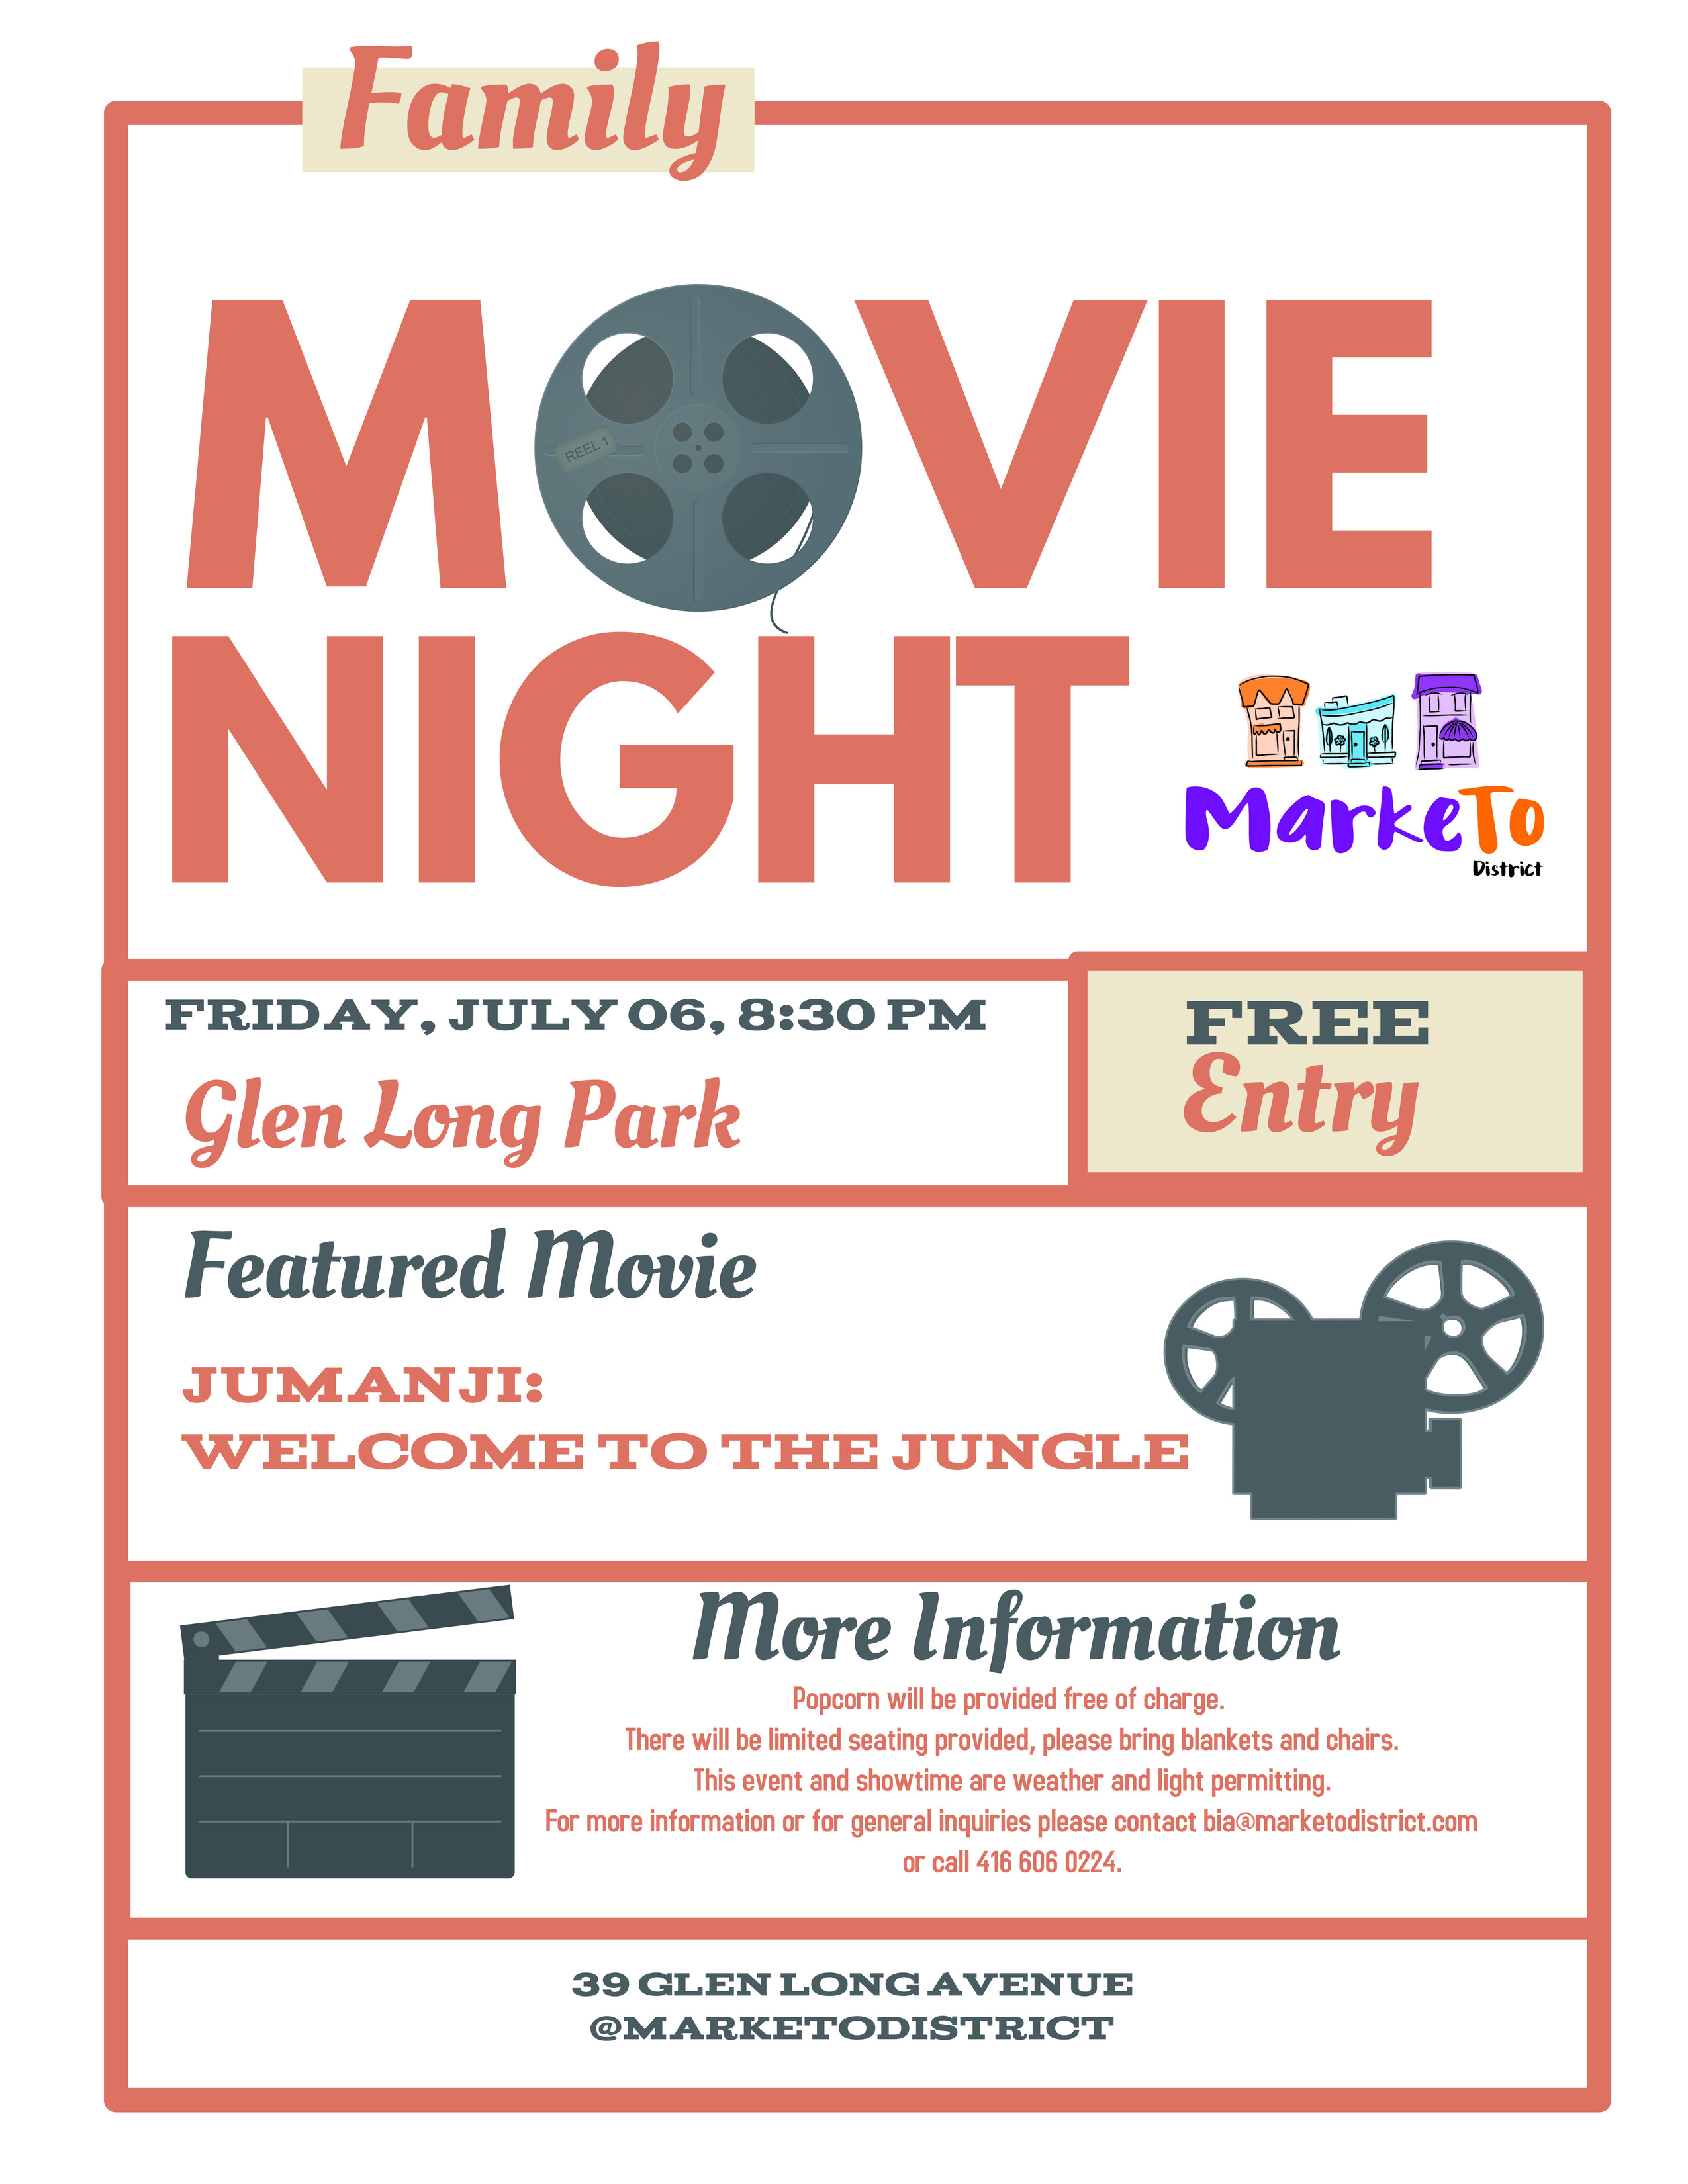 The Marketo District is proud to announce our 2nd annual Movie Night will be held on July 06, at 8:30 PM in Glen Long Park. Entrance is free and popcorn is on us. Please bring something to sit on, and keep an eye on our twitter account (@MarketoDistrict) for updates relating to weather. The movie will be Jumanji: Welcome to the Jungle.  See you soon!